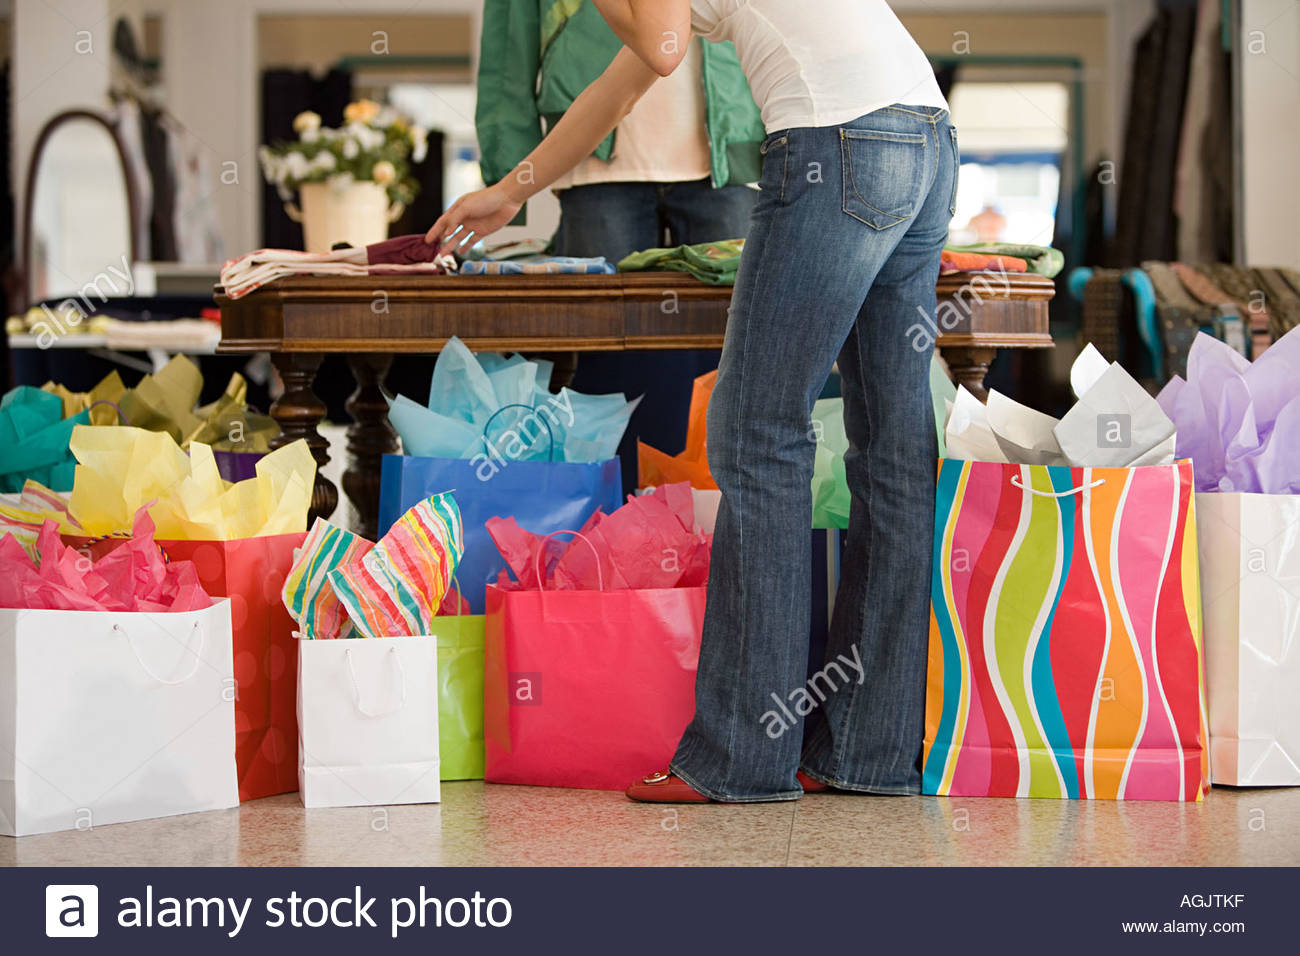 Woman in shop with shopping bags - Stock Image